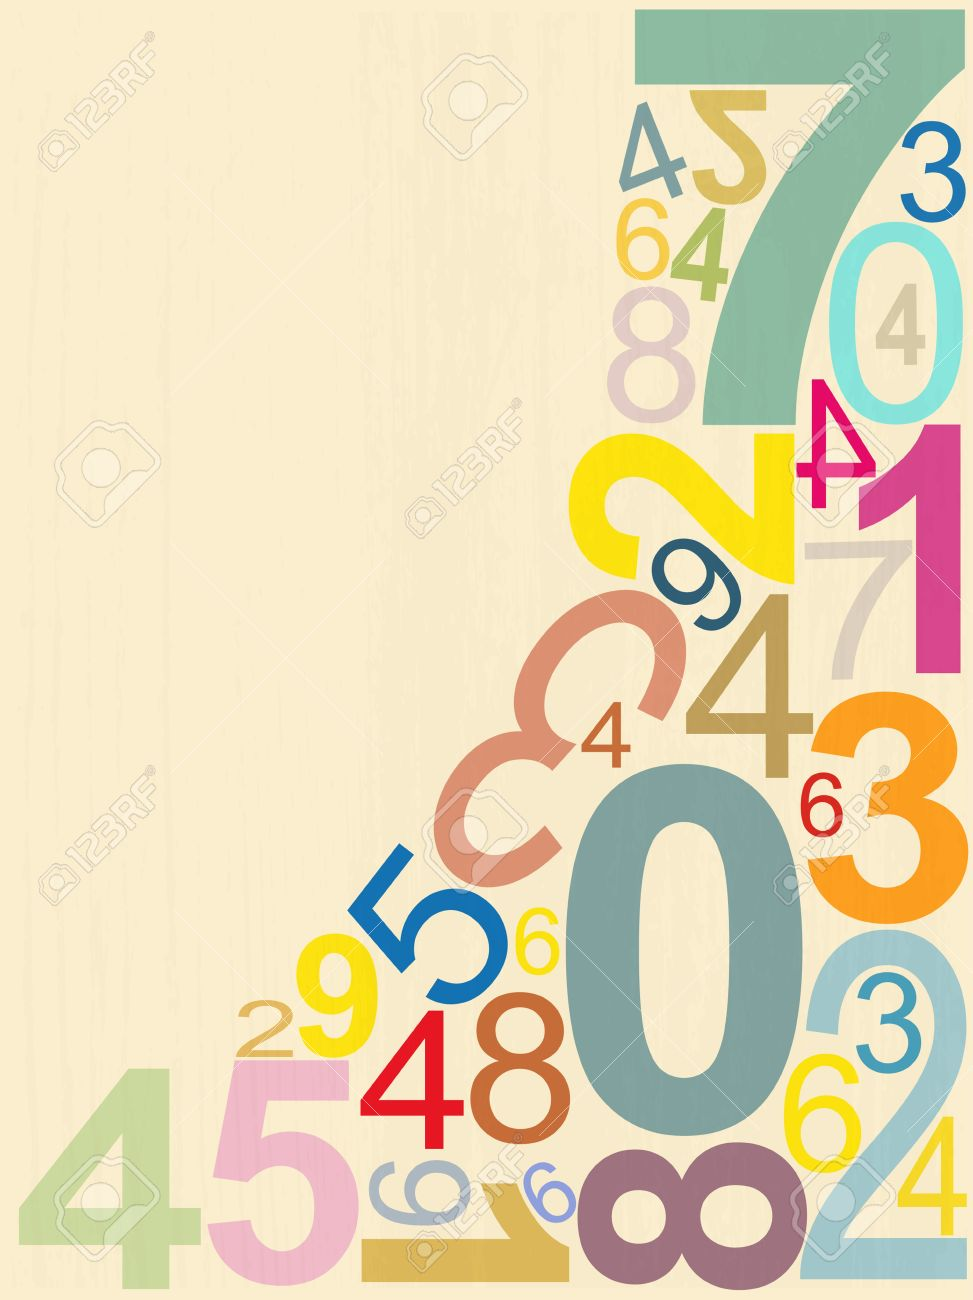 background numbers royalty free cliparts, vectors, and stock